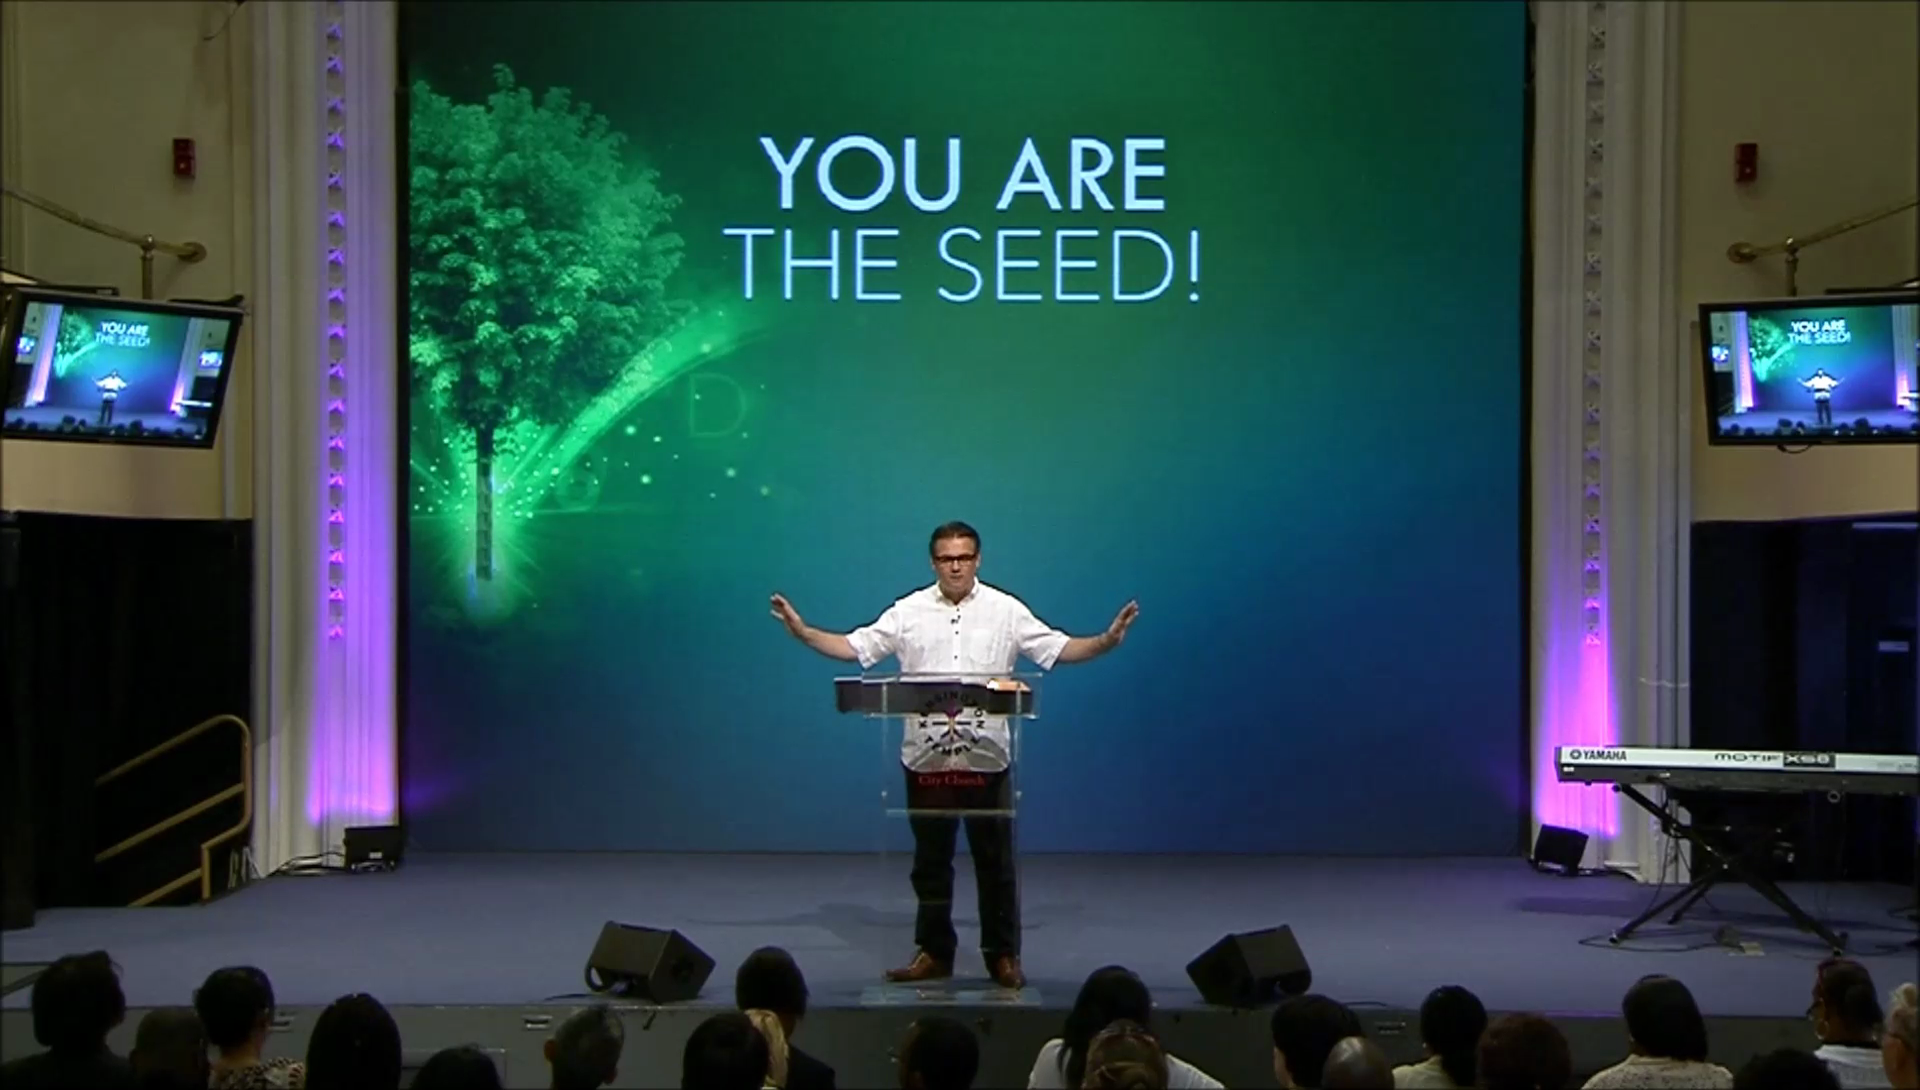 You are the seed